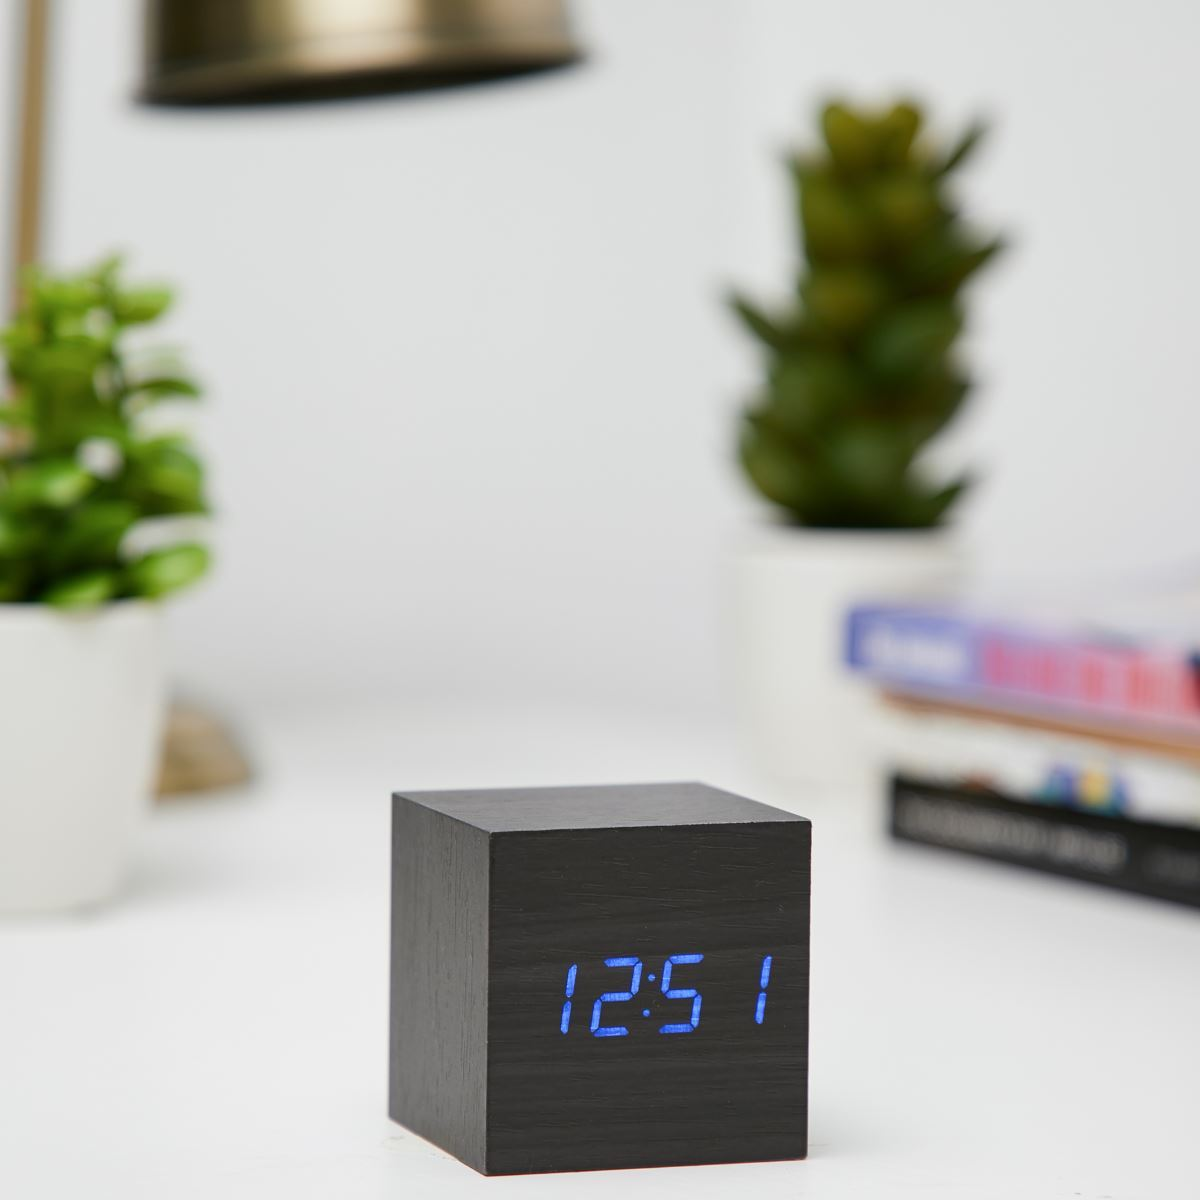 Checkmate LED Wood Cube Desk Clock Blue 6cm VGY 808B 11